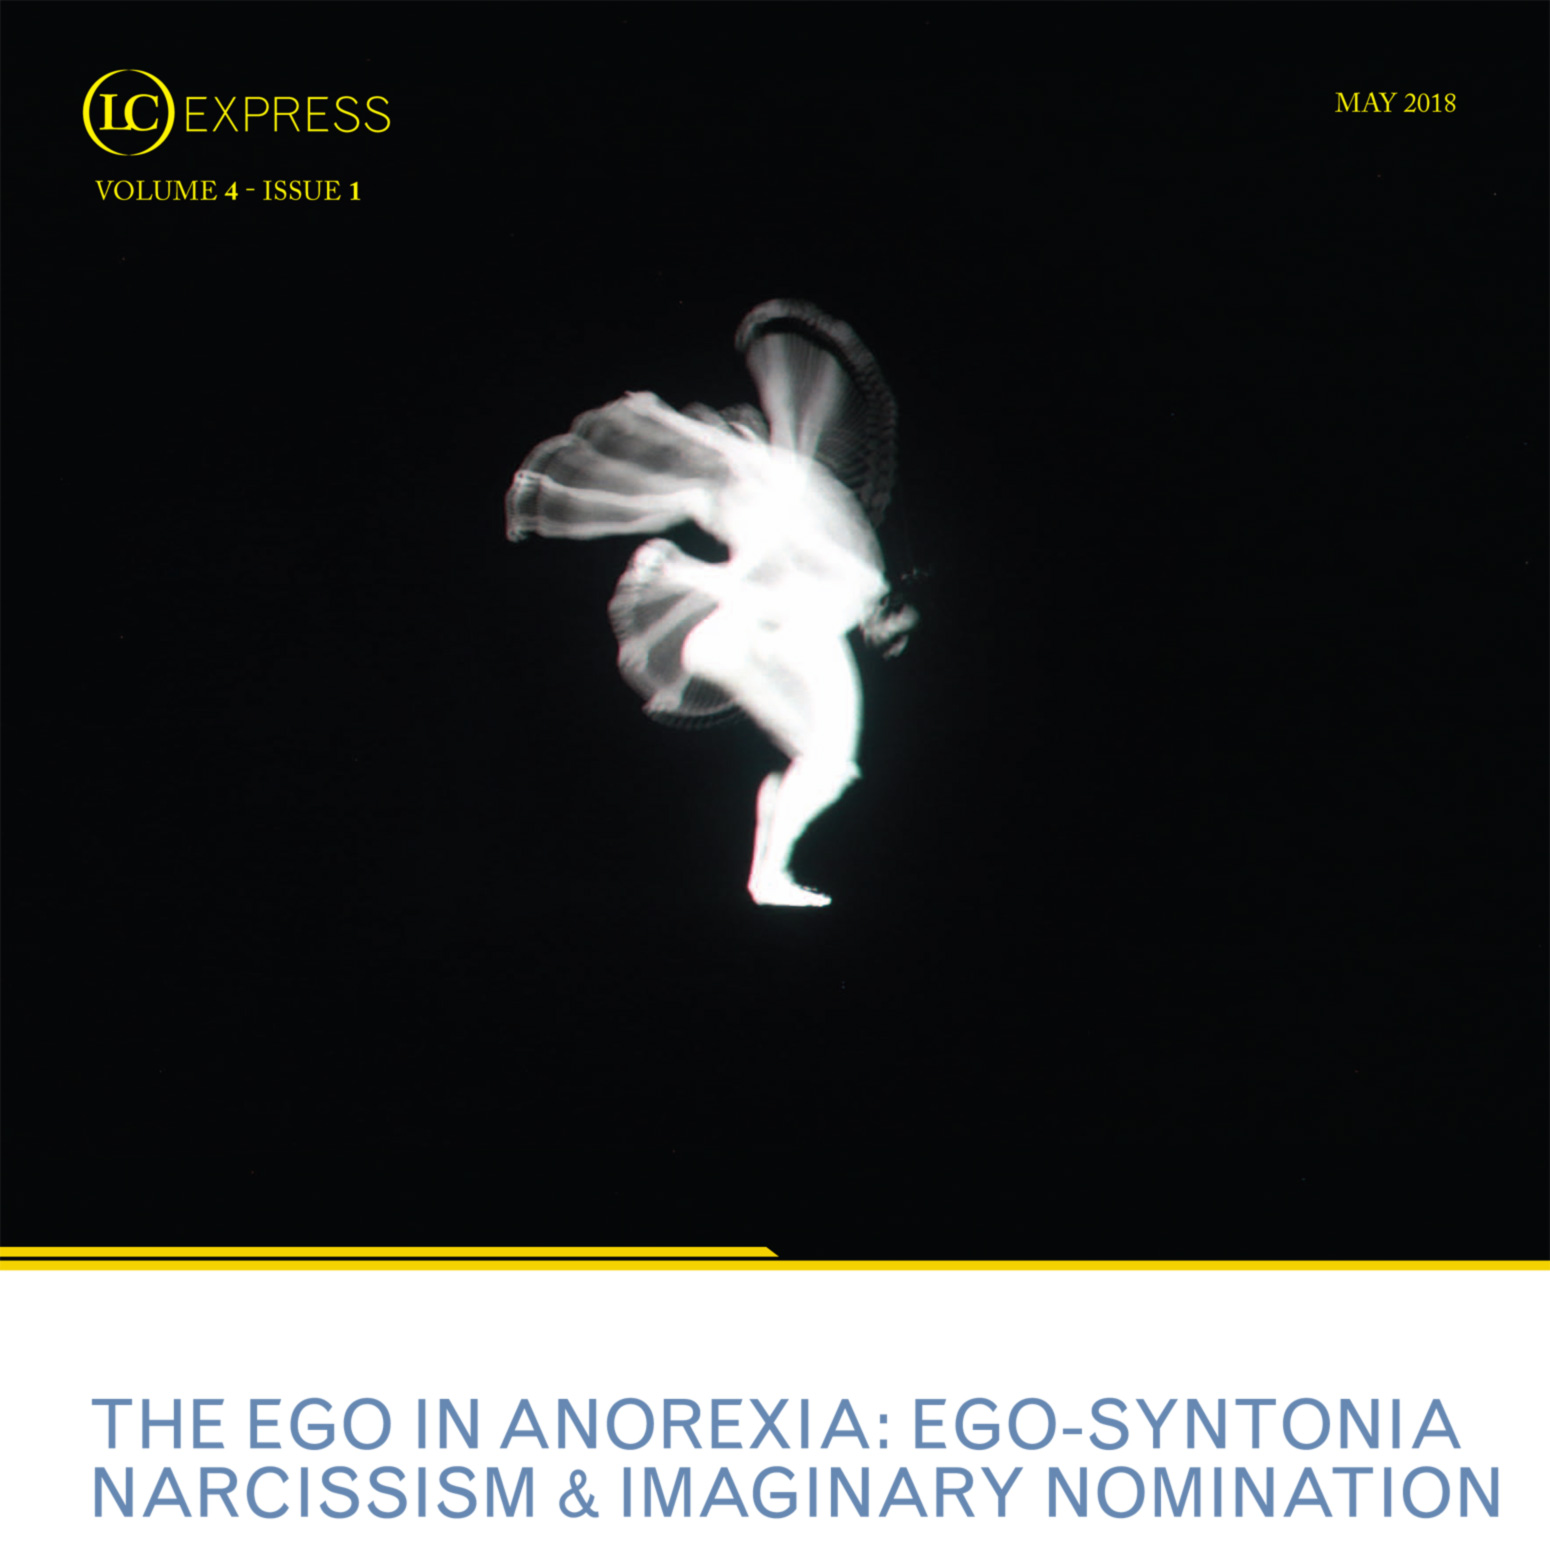 LCExpress Volume 4 / Issue 1  THE EGO IN ANOREXIA: EGO-SYNTONIA, NARCISSISM AND IMAGINARY NOMINATION   Domenico Cosenza